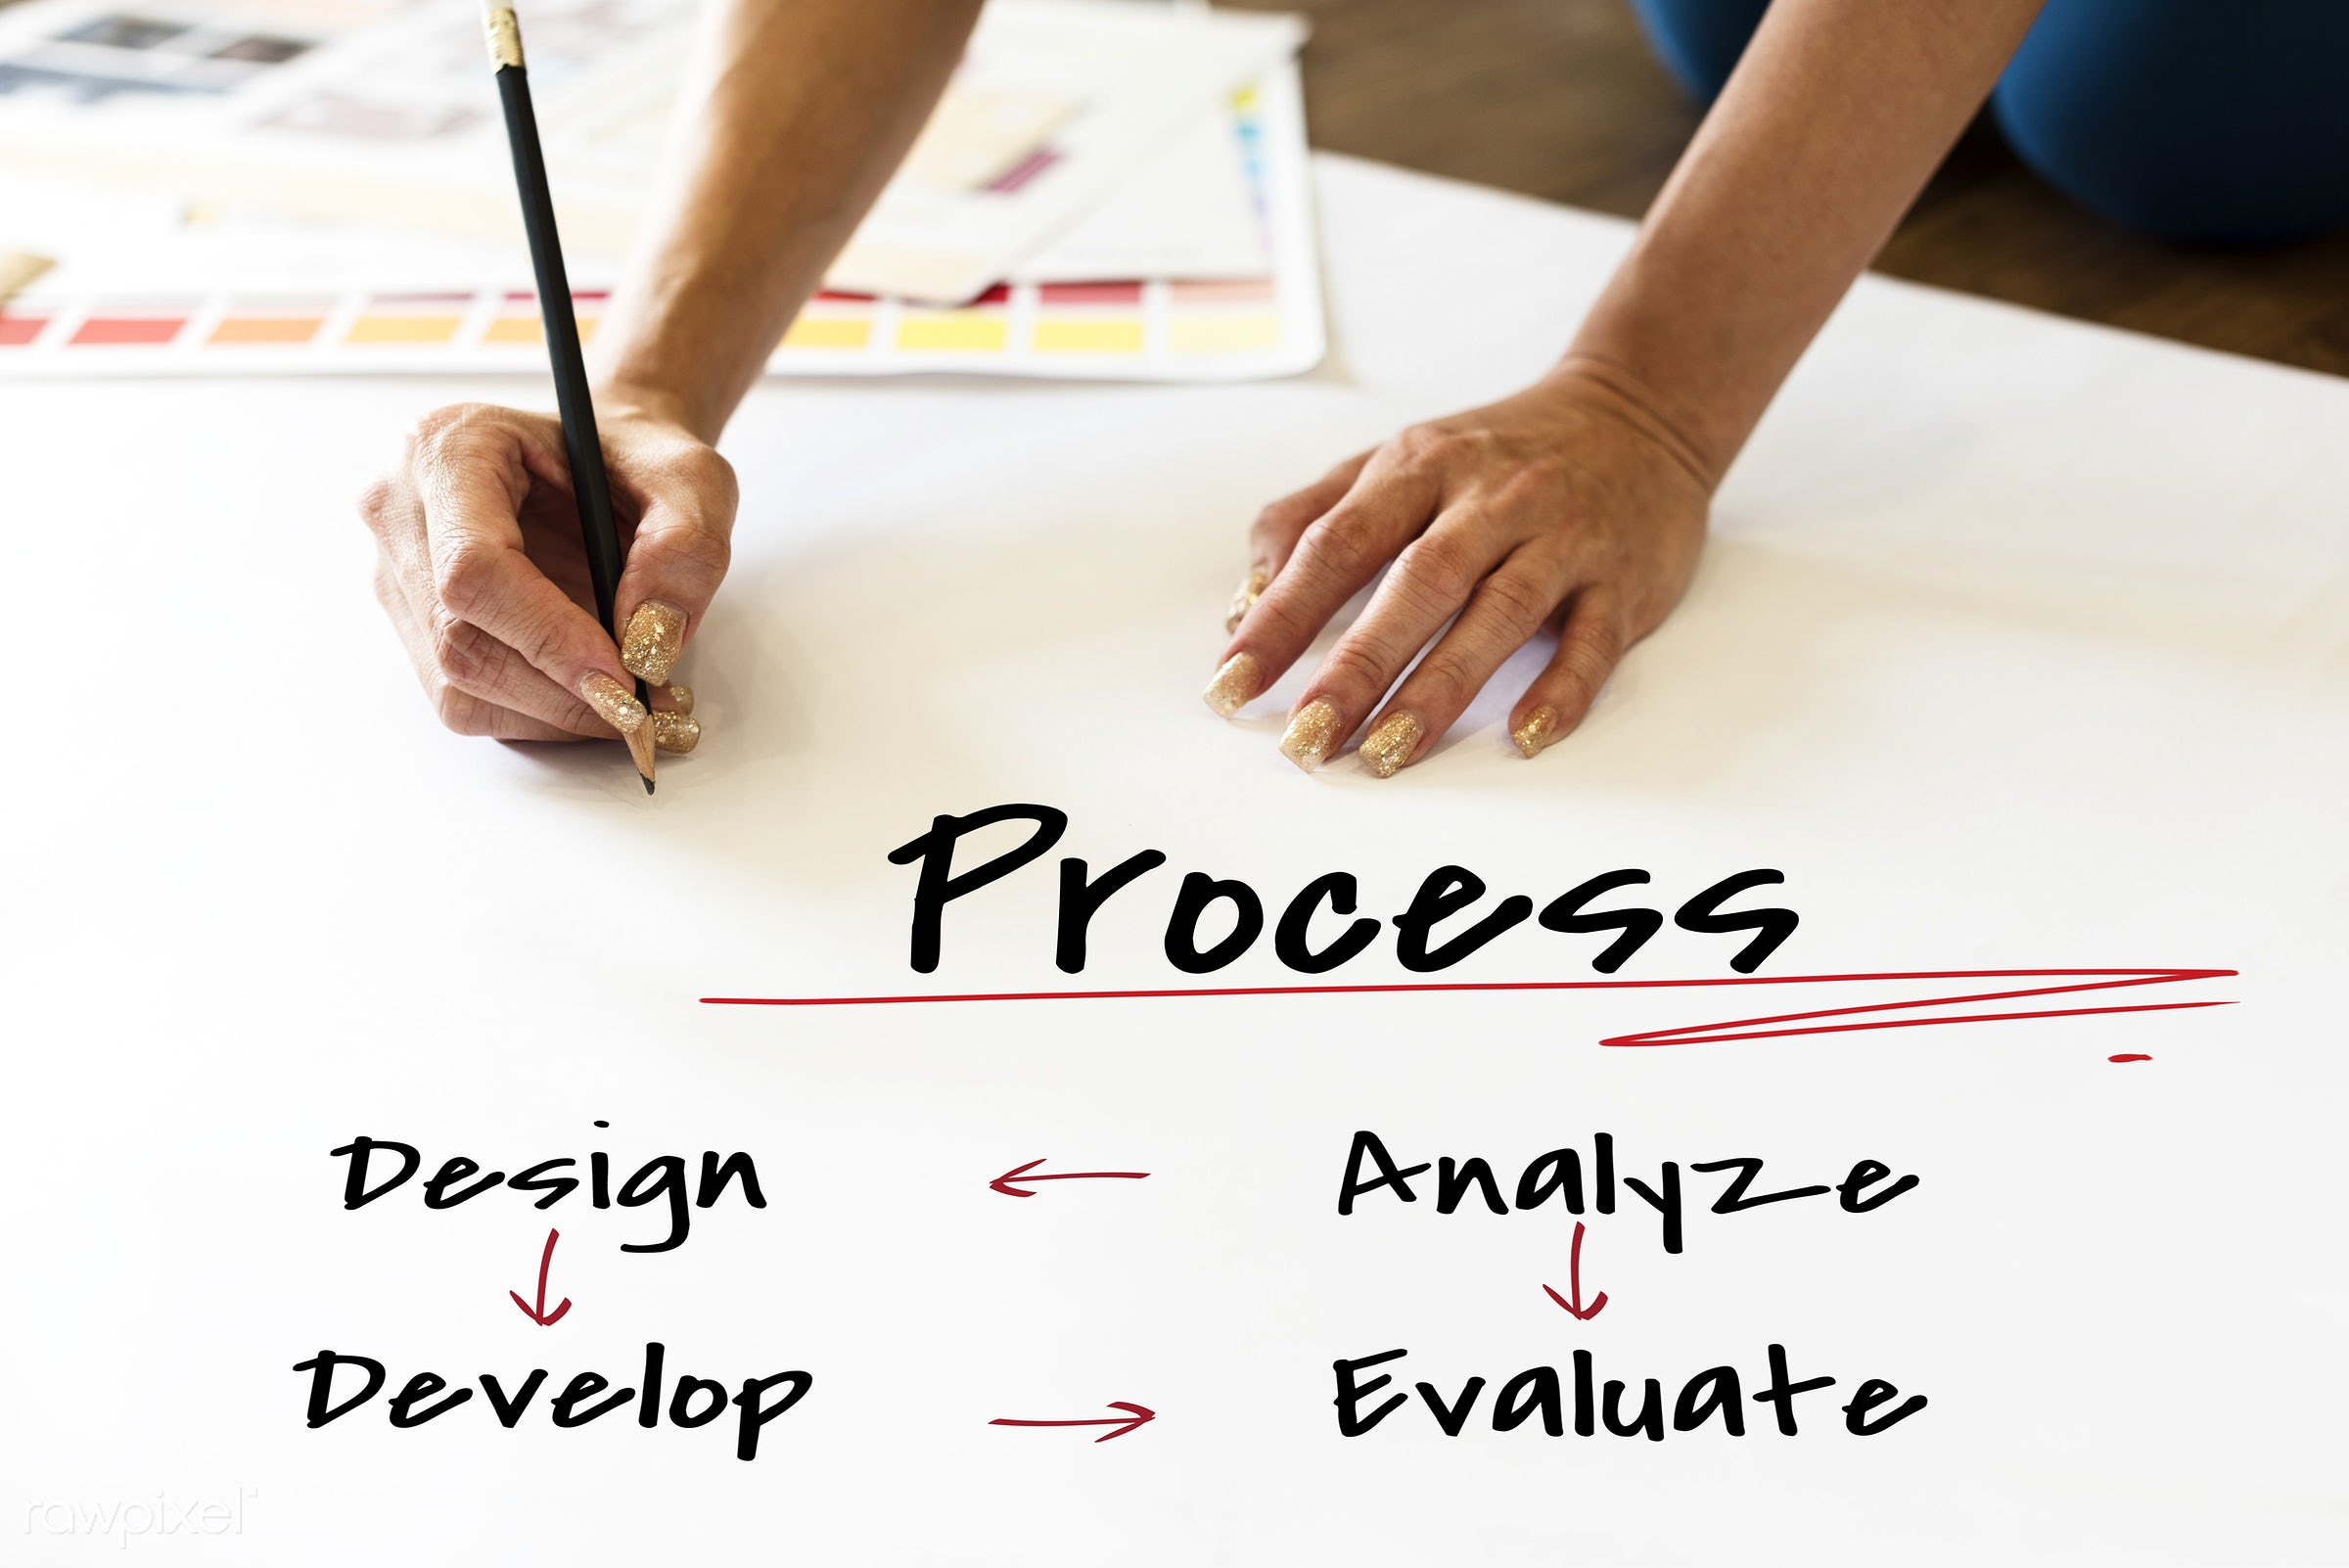 Design process - analyze, art, business, business plan, creation, creative, creativity, design, develop, drawing, evaluate,...